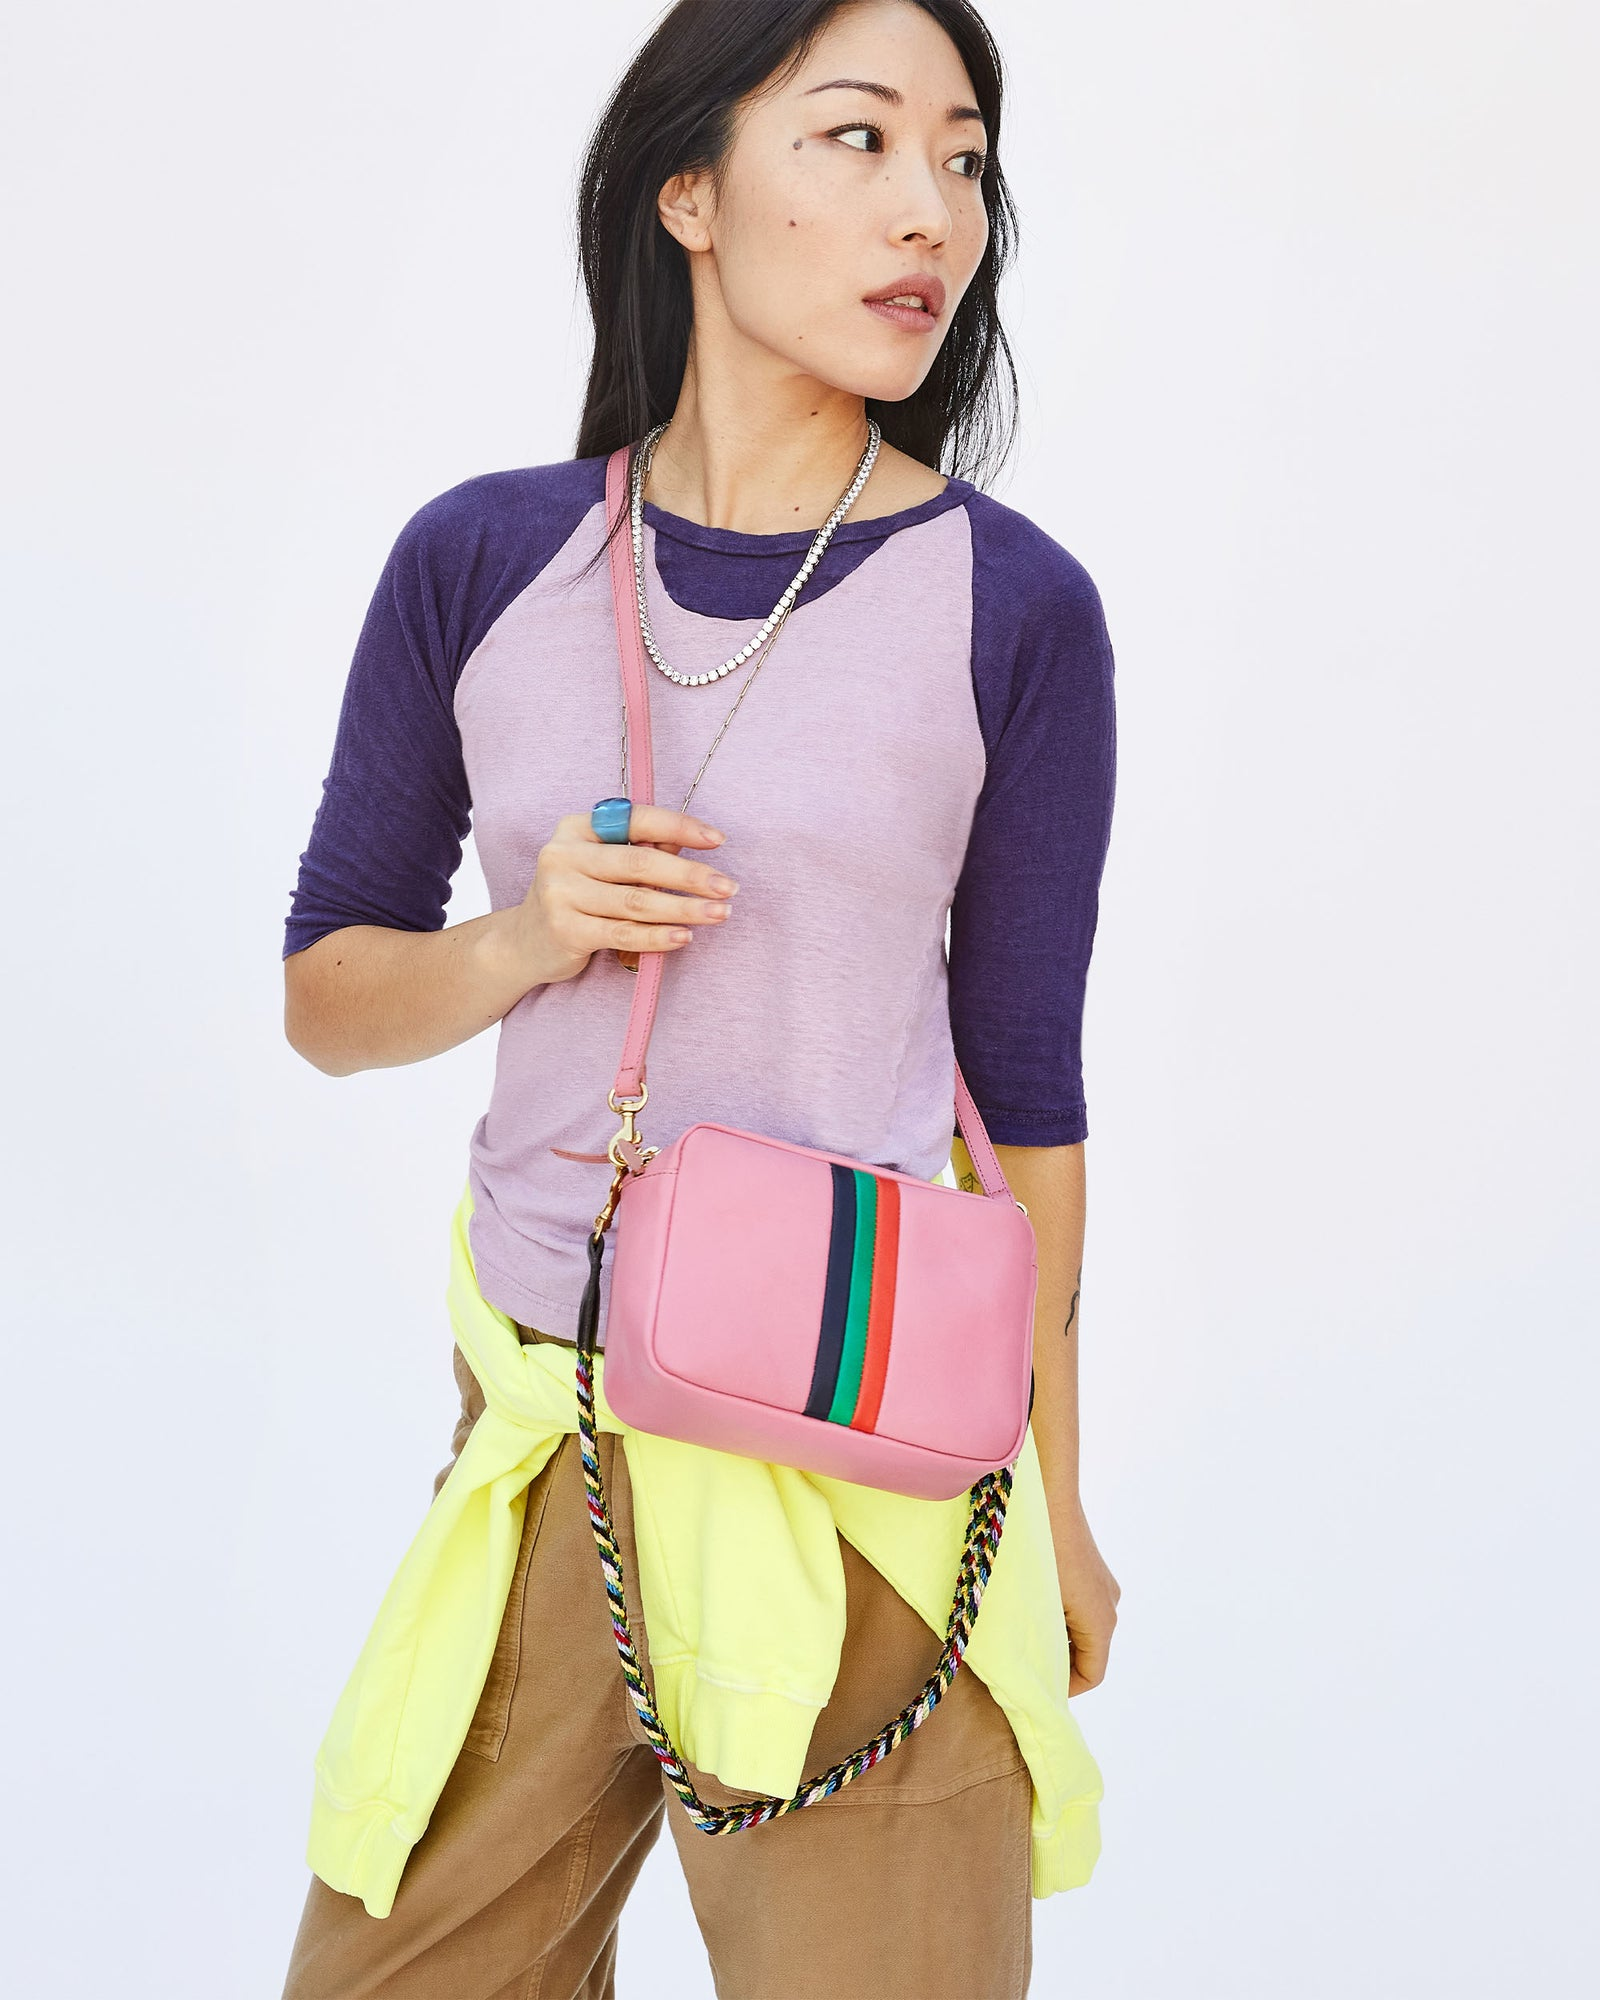 Petal w/ Stripes Midi Sac with Multi Braided Shoulder Strap on Ami